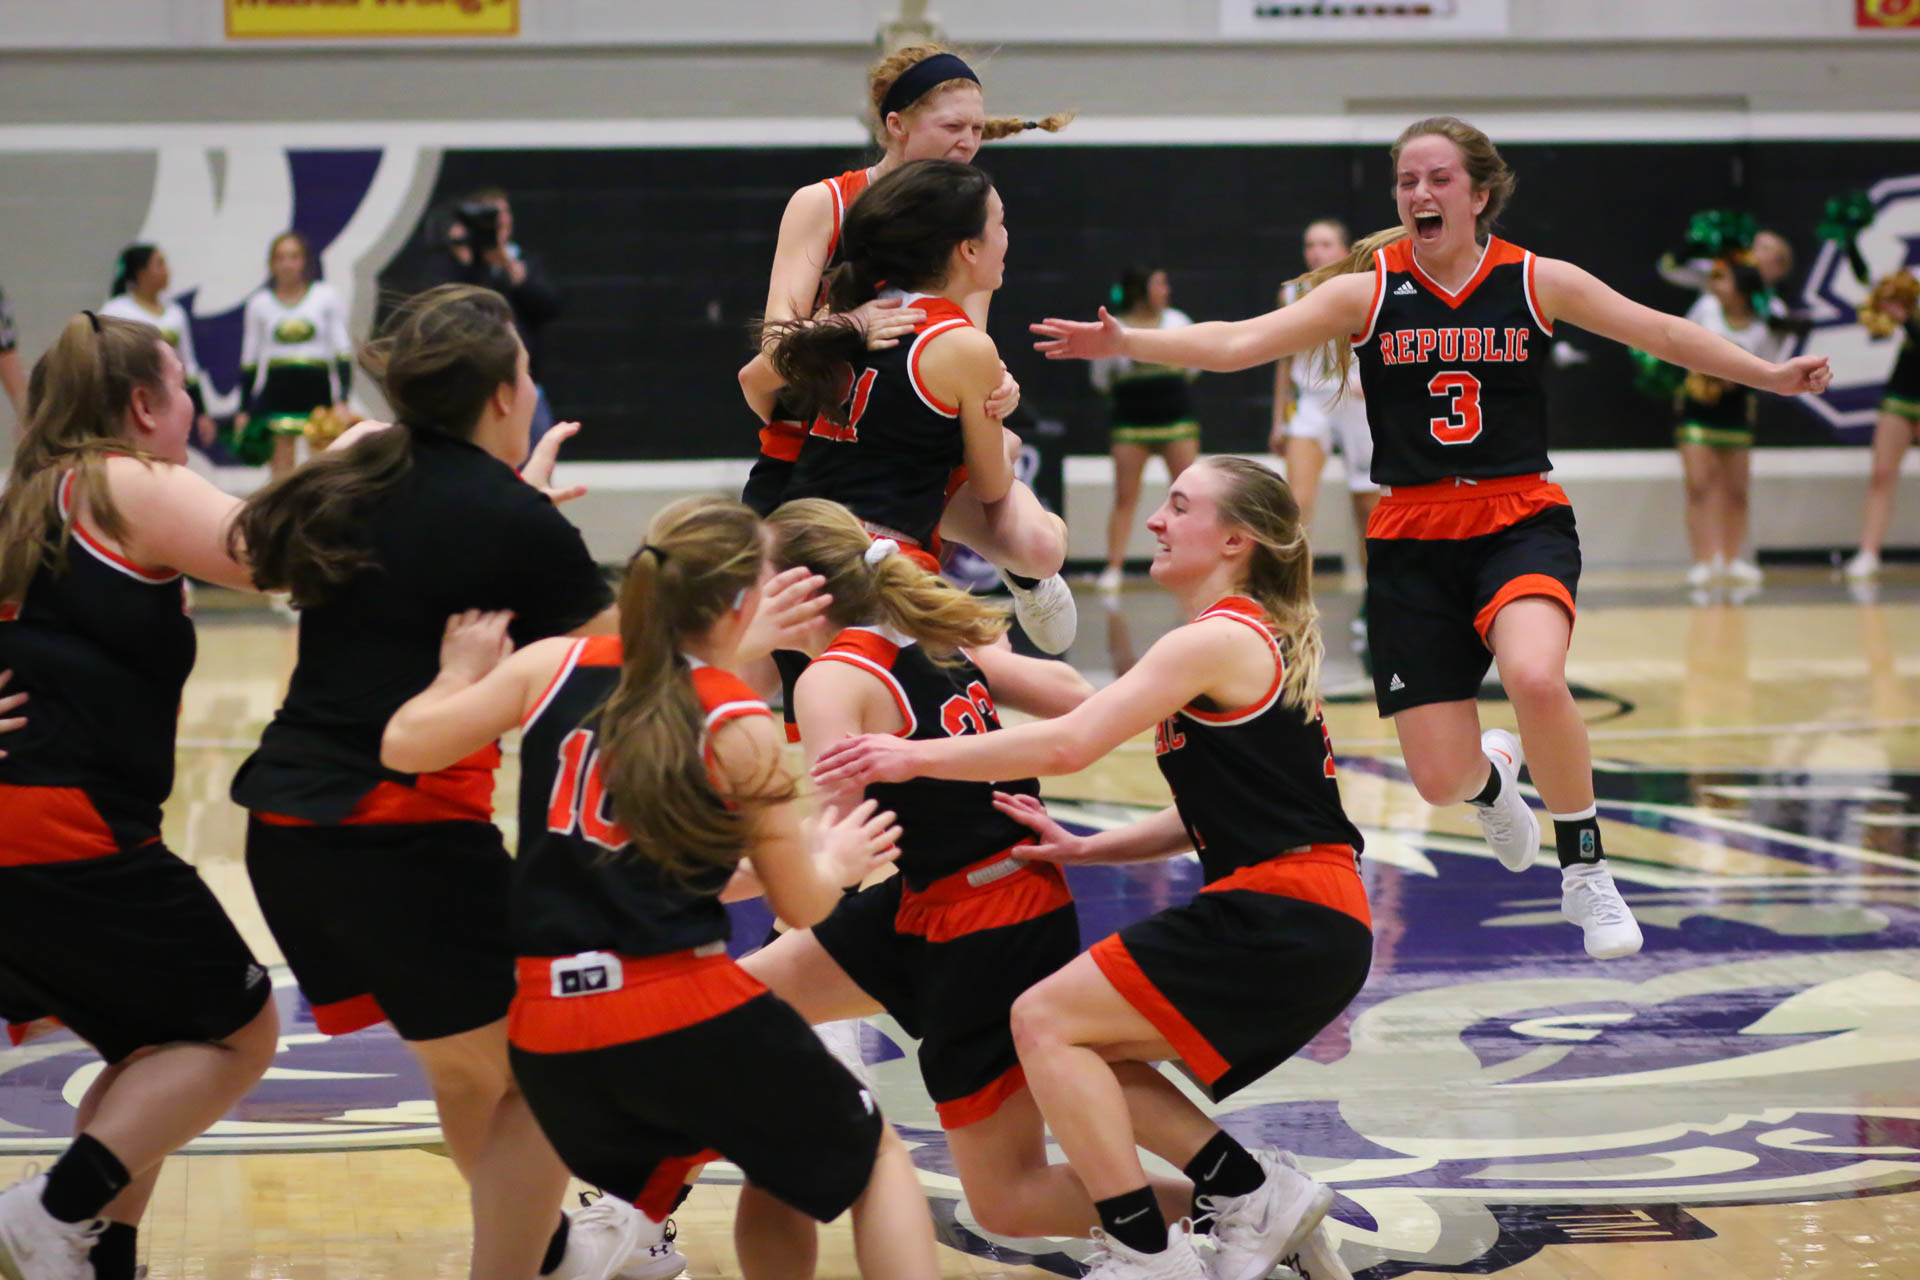 Lady Tigers Earn State Berth With Gutsy Win Over Rock Bridge